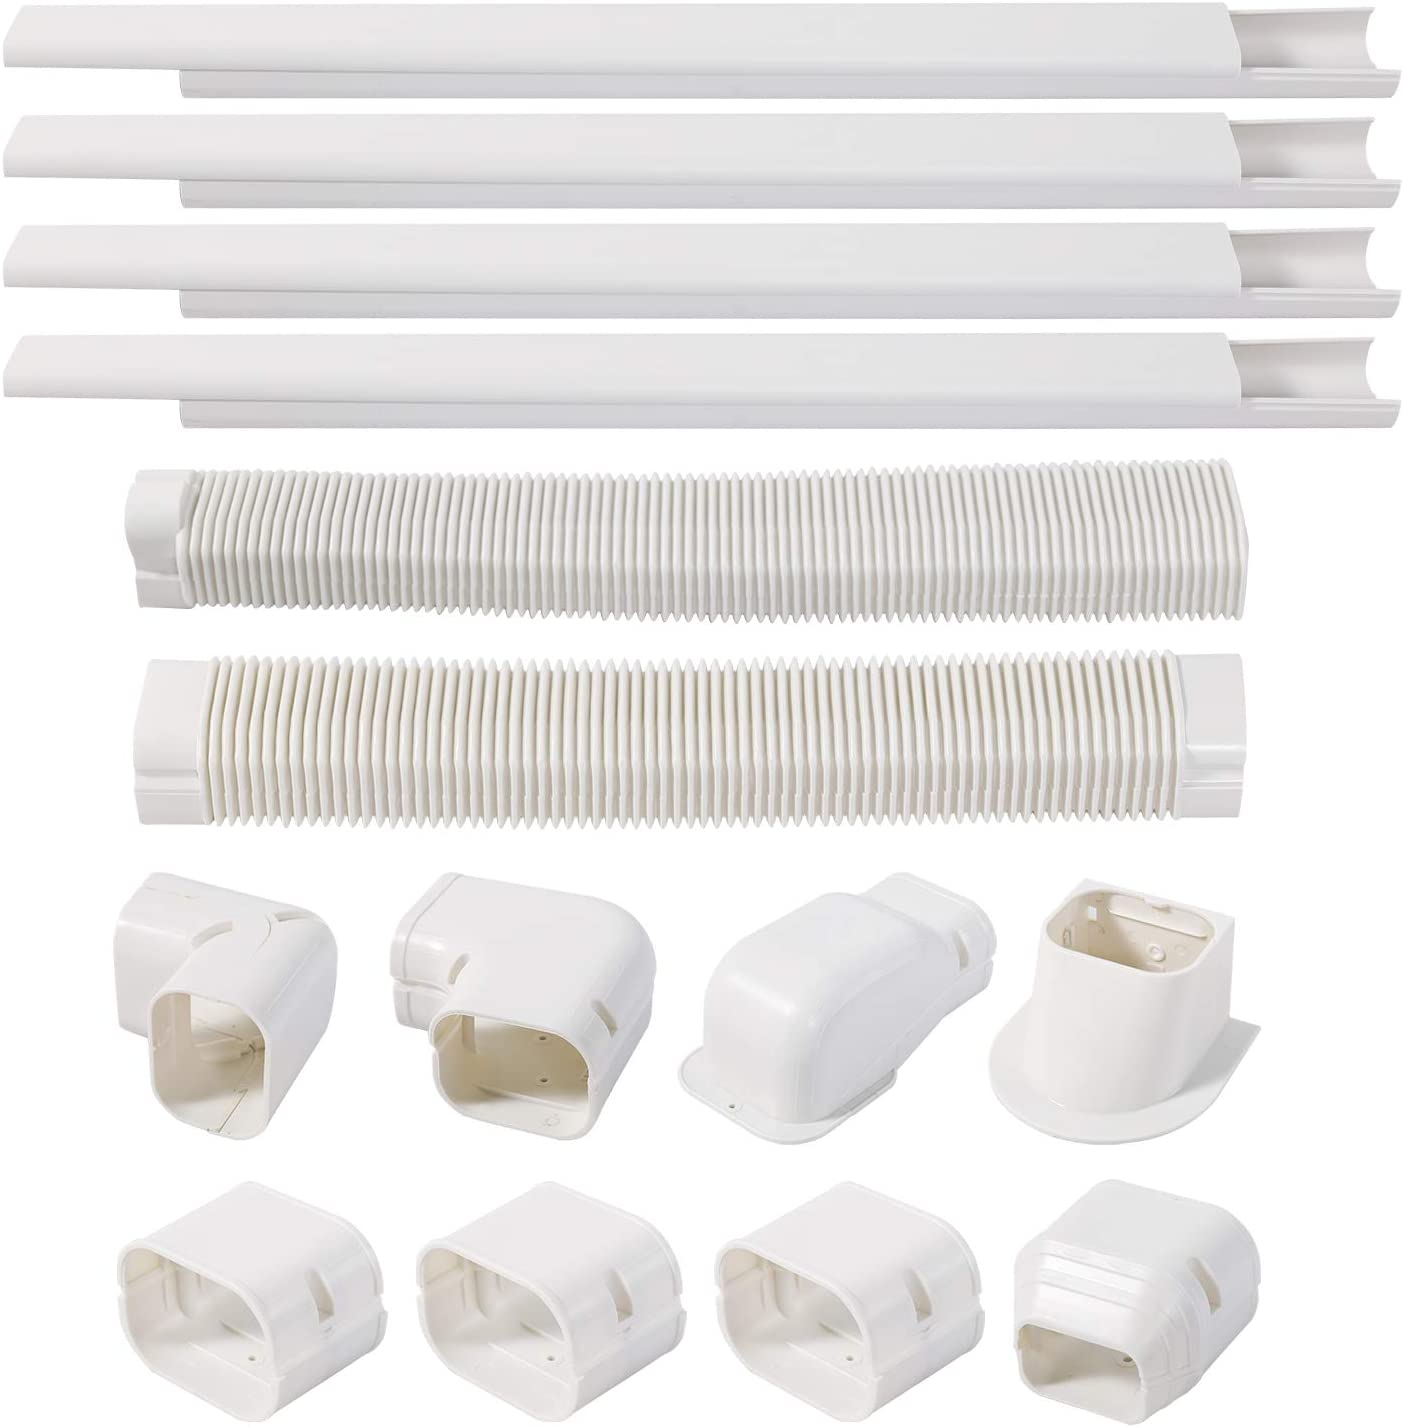 TAKTOPEAK 3'' 17 Ft PVC Decorative Line Cover Kit for Ductless Mini Split Air Conditioner-Full Set, No Other Parts Needed